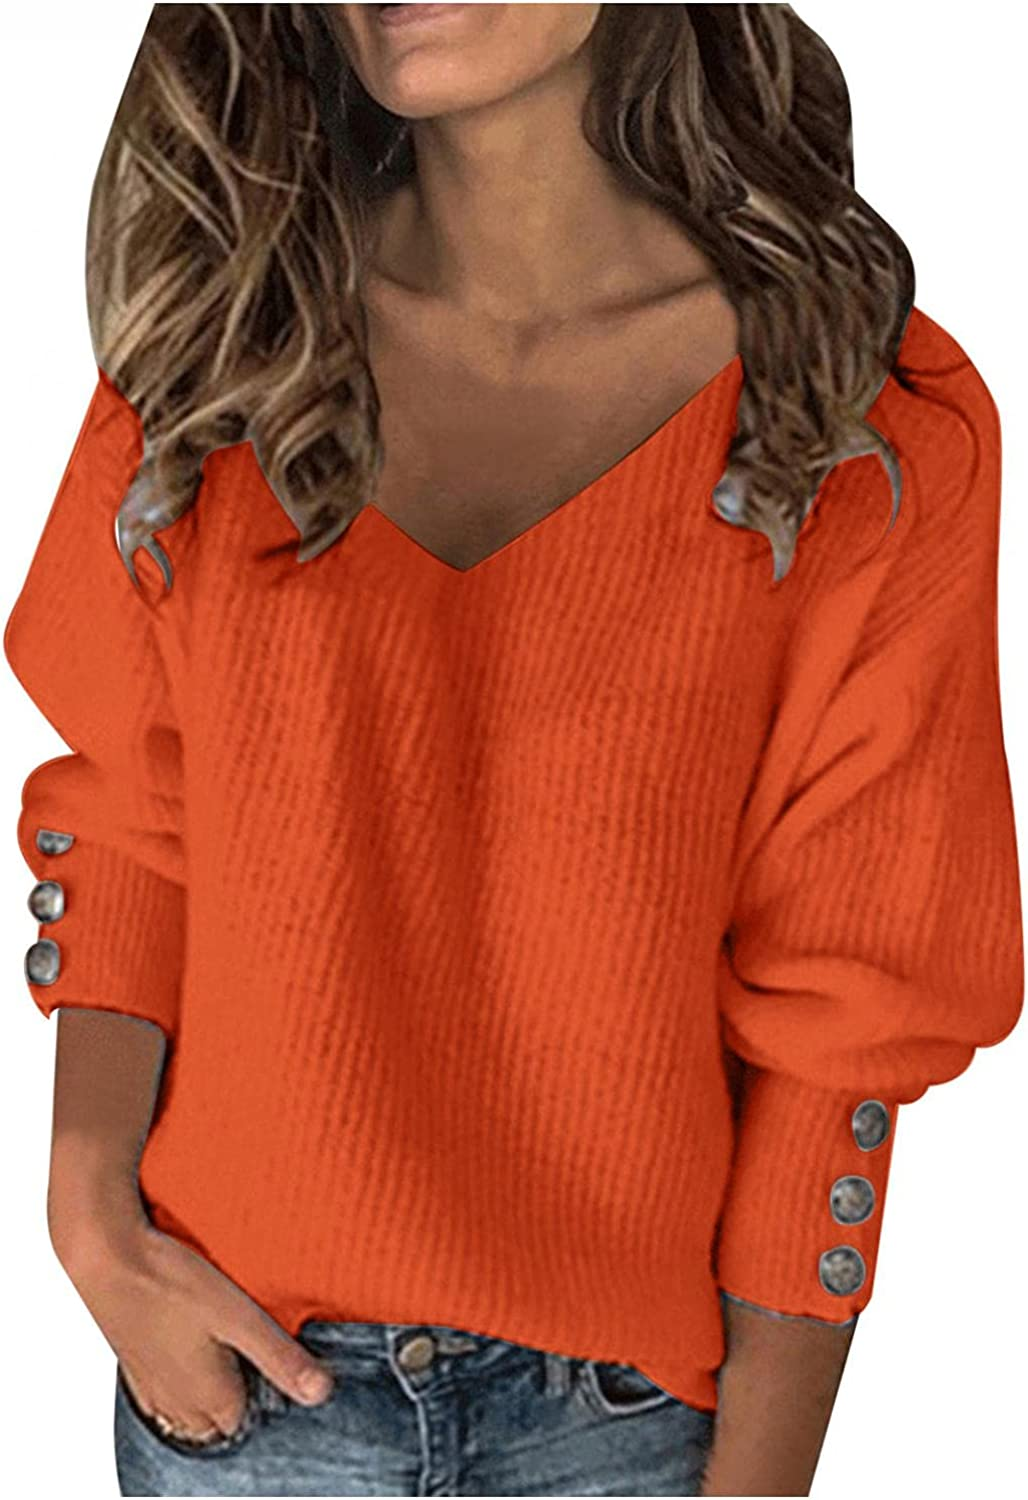 FABIURT Sweater for Women, Womens V Neck Solid Color Tunic Tops Blouse Fashion Knitted Sweaters